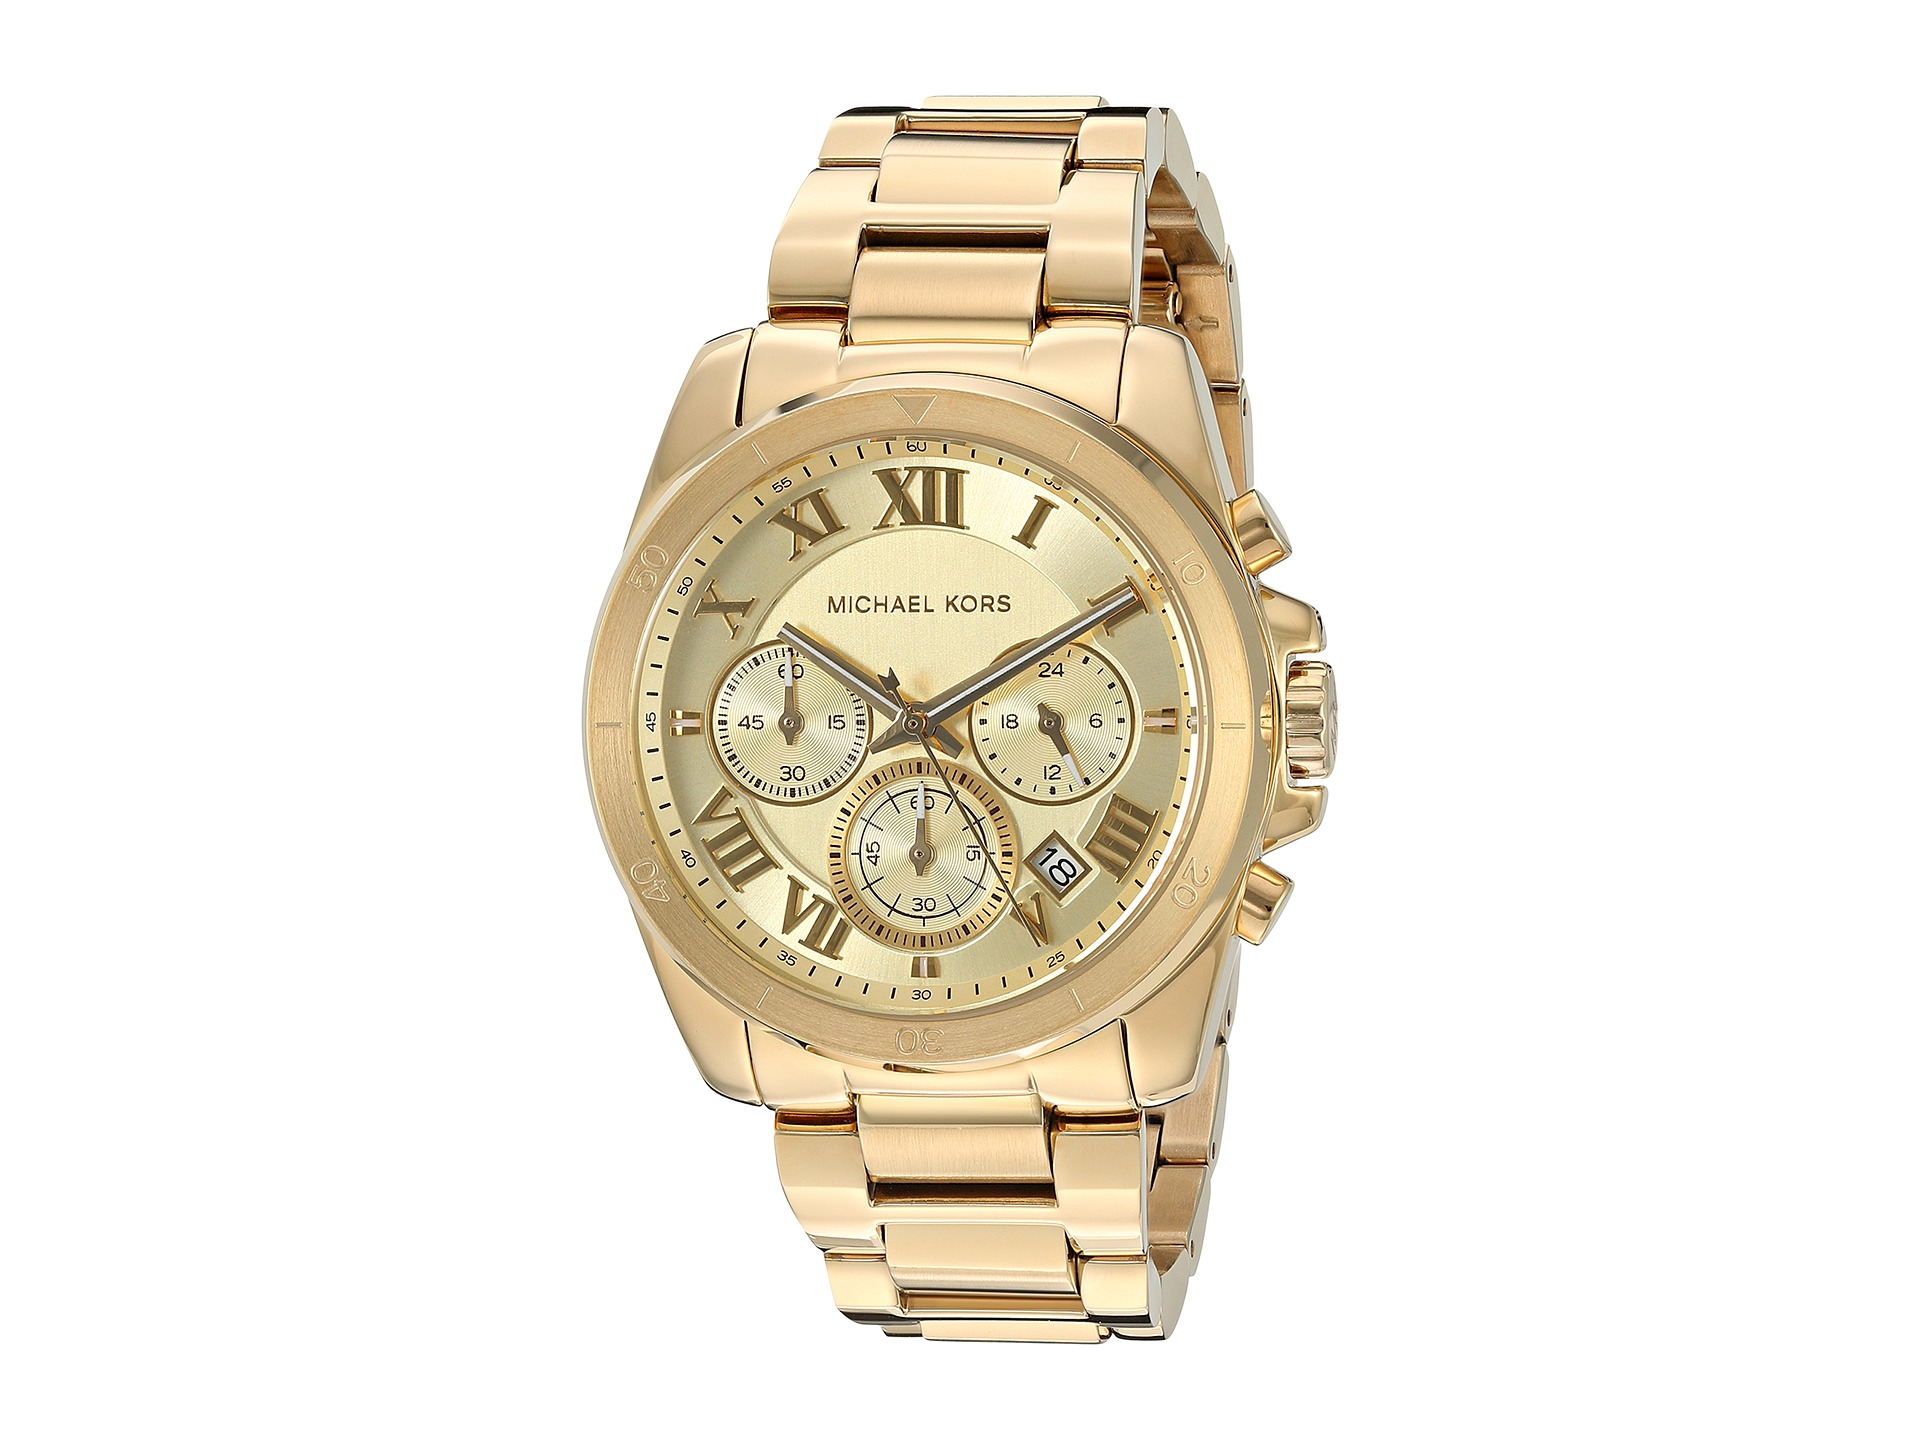 baby michael kors watch Choose Mk Handbags Outlet Online Attractive & Durable. The false return charges each carry a maximum potential penalty Michael Kors Black Frieay of three years in prison and a Michael Kors Handbags Outlet $, fine. Attorney for the District of Arizona John S.